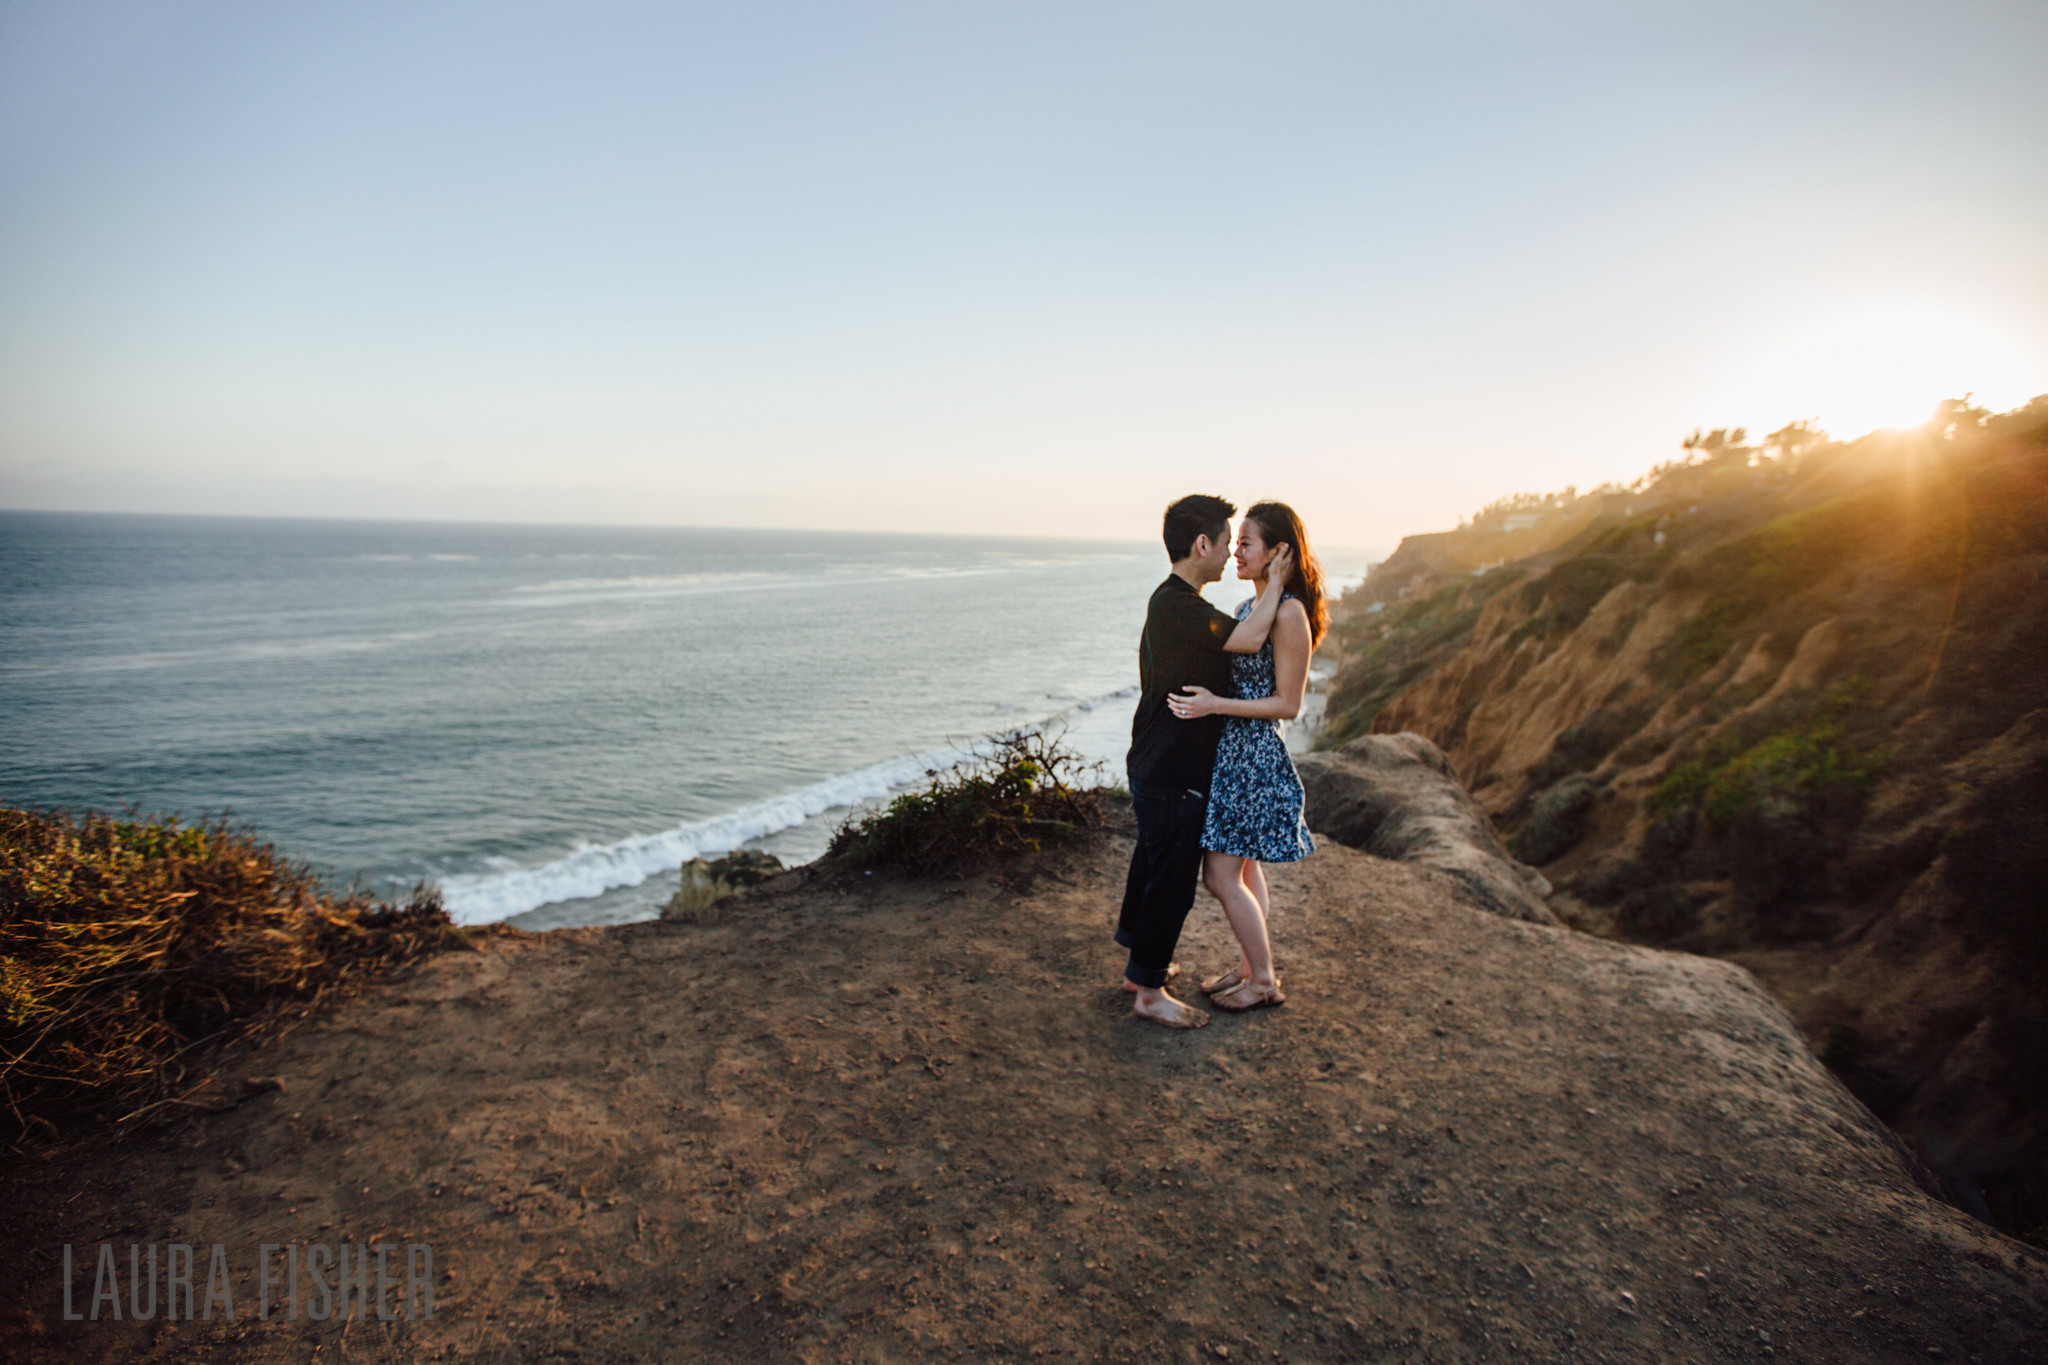 malibu-california-wedding-el-matador-beach-laura-fisher-photography-0068.jpg